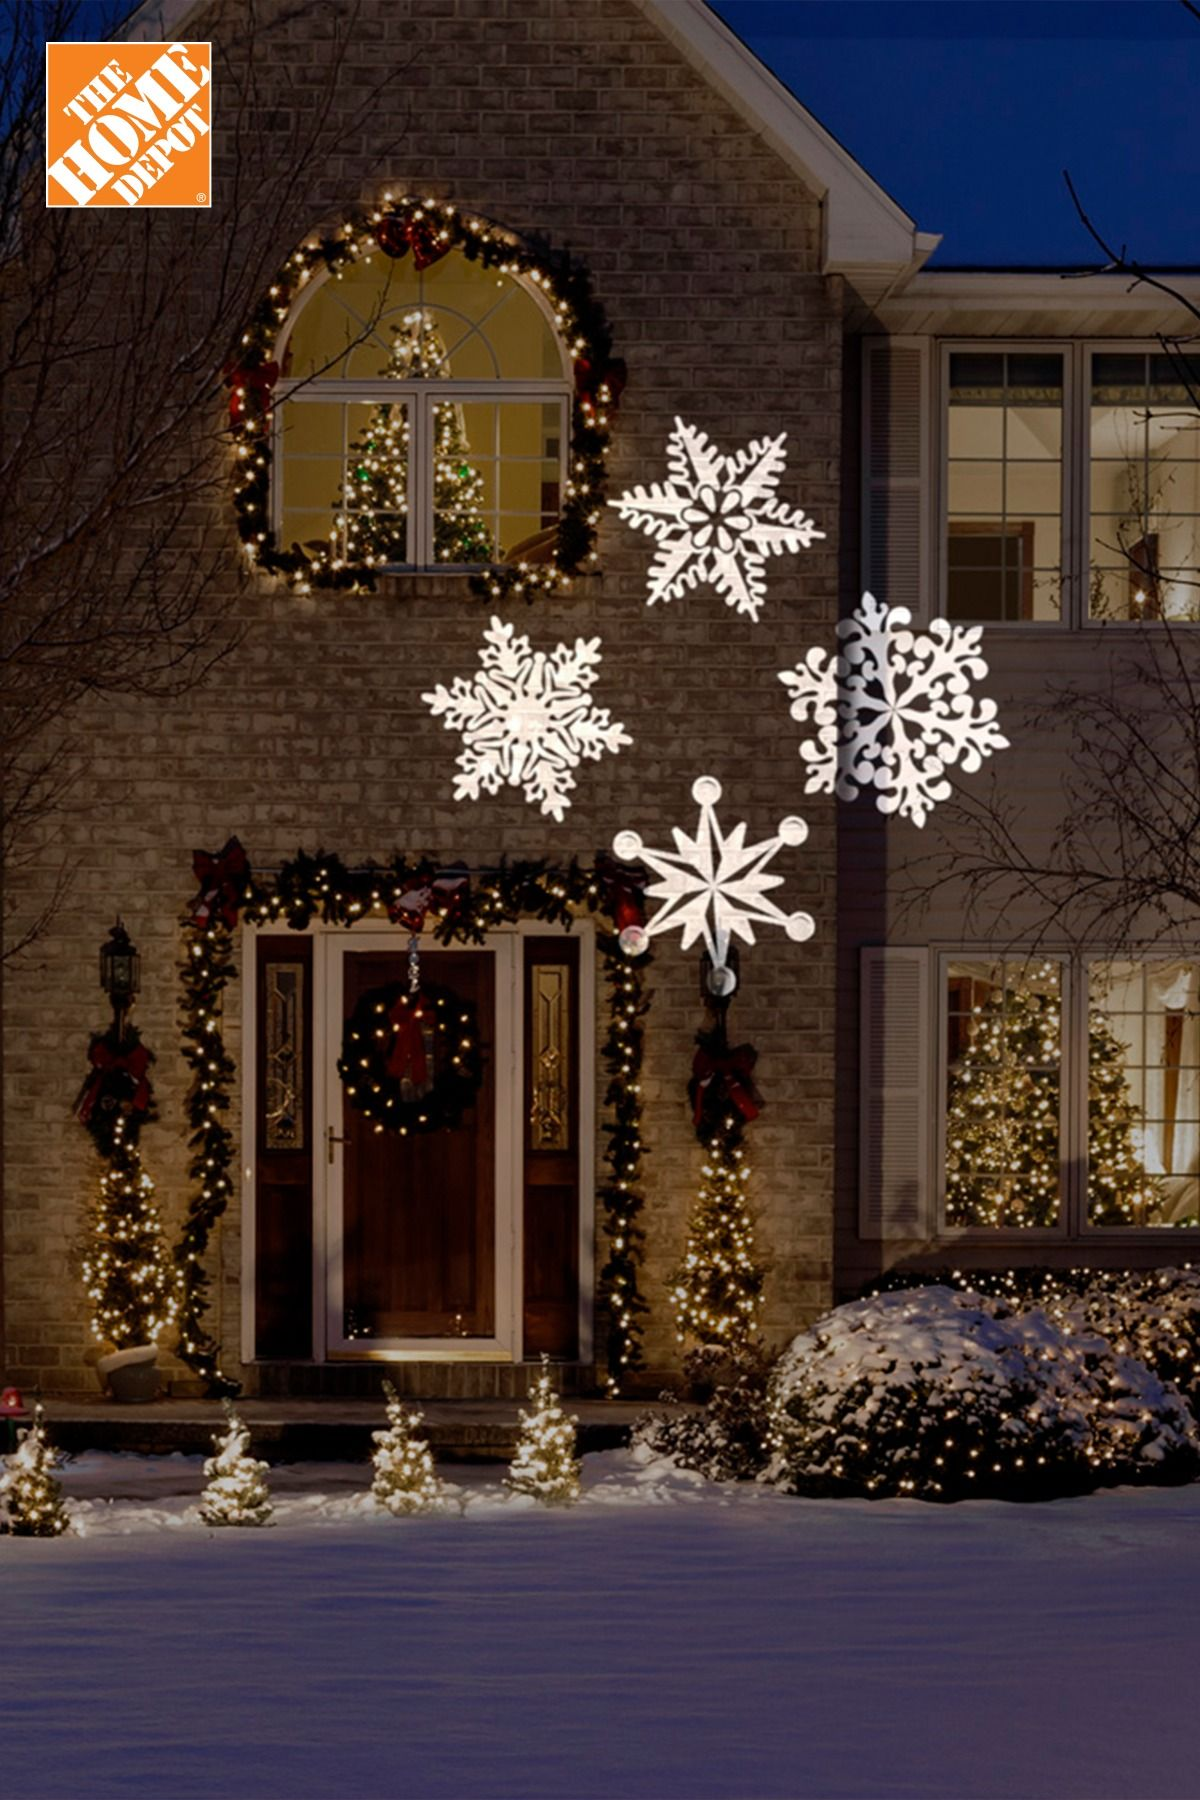 Christmas lights go a long way in setting the festive mood ...